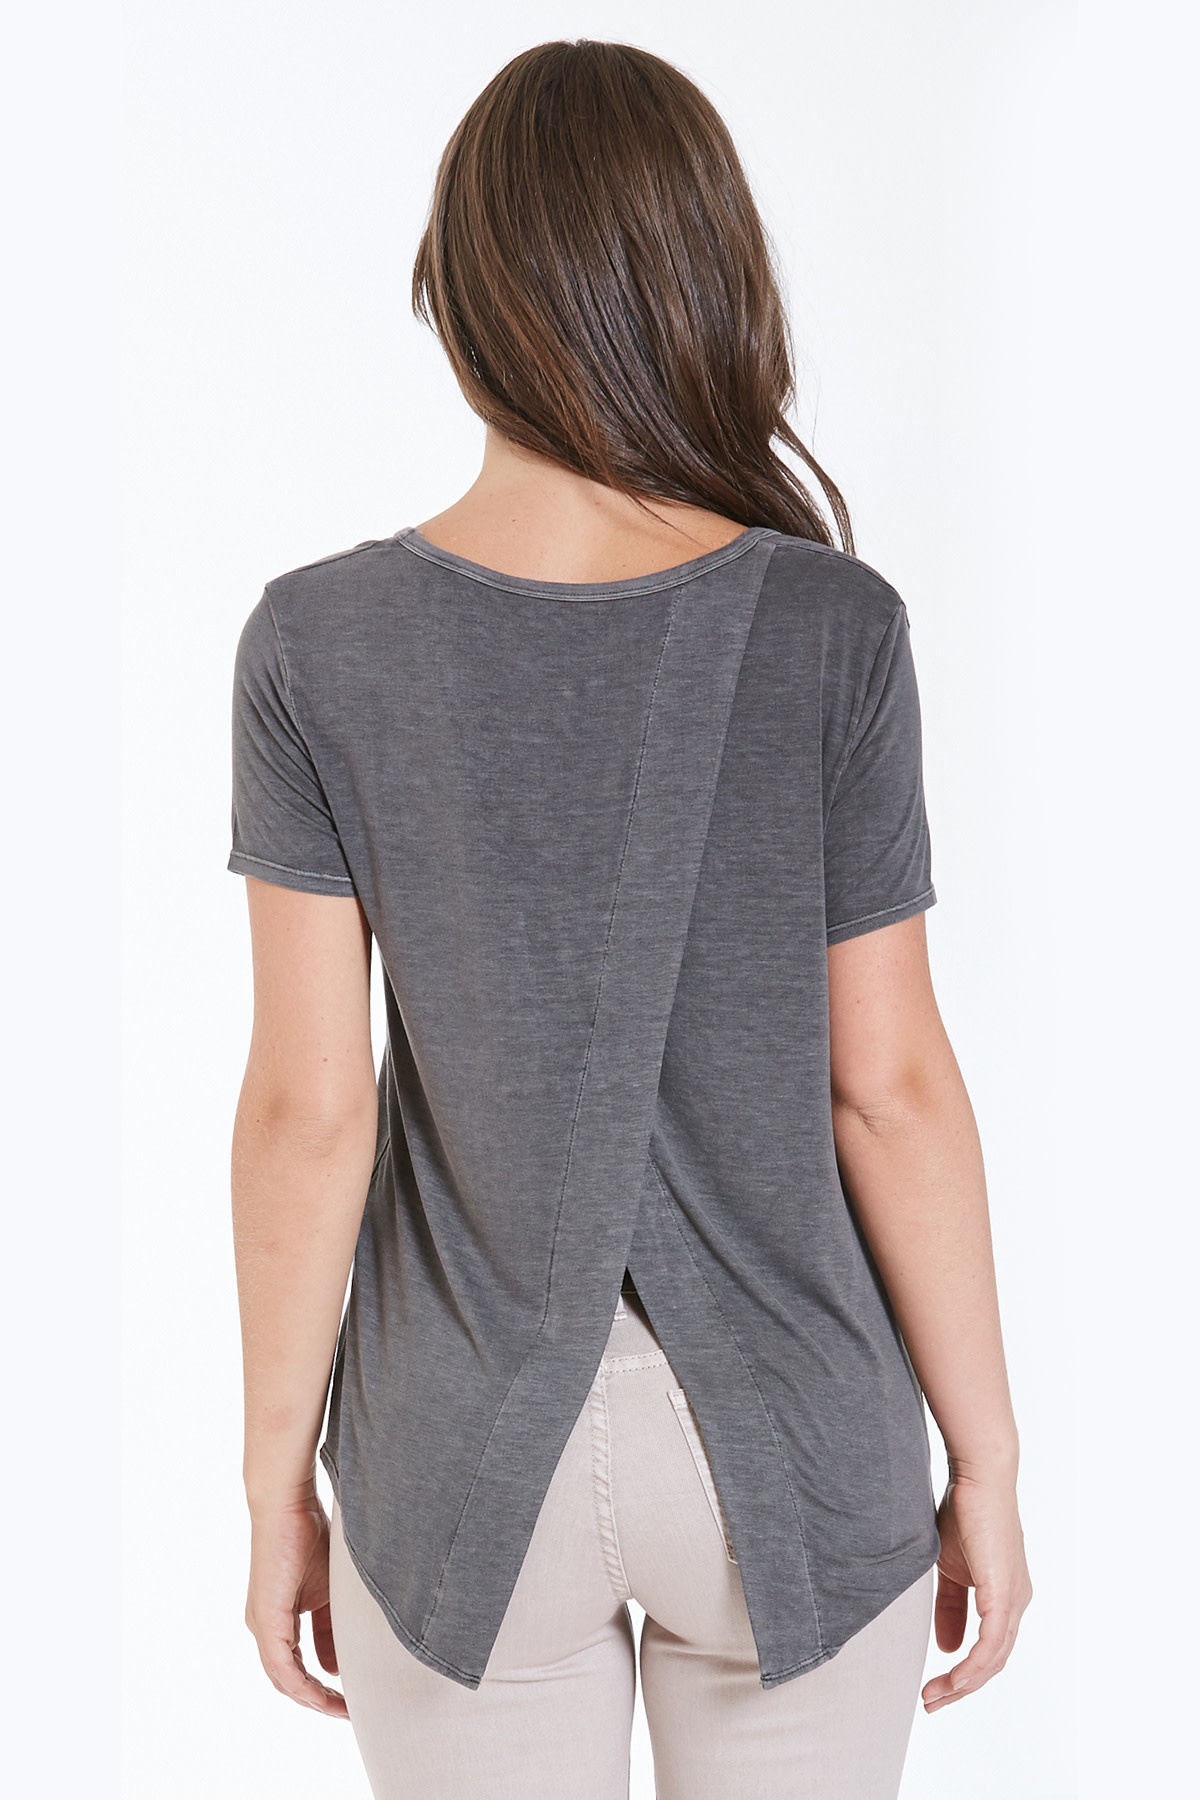 Dear John Suki Tee w/ Embroidered Pocket Gray